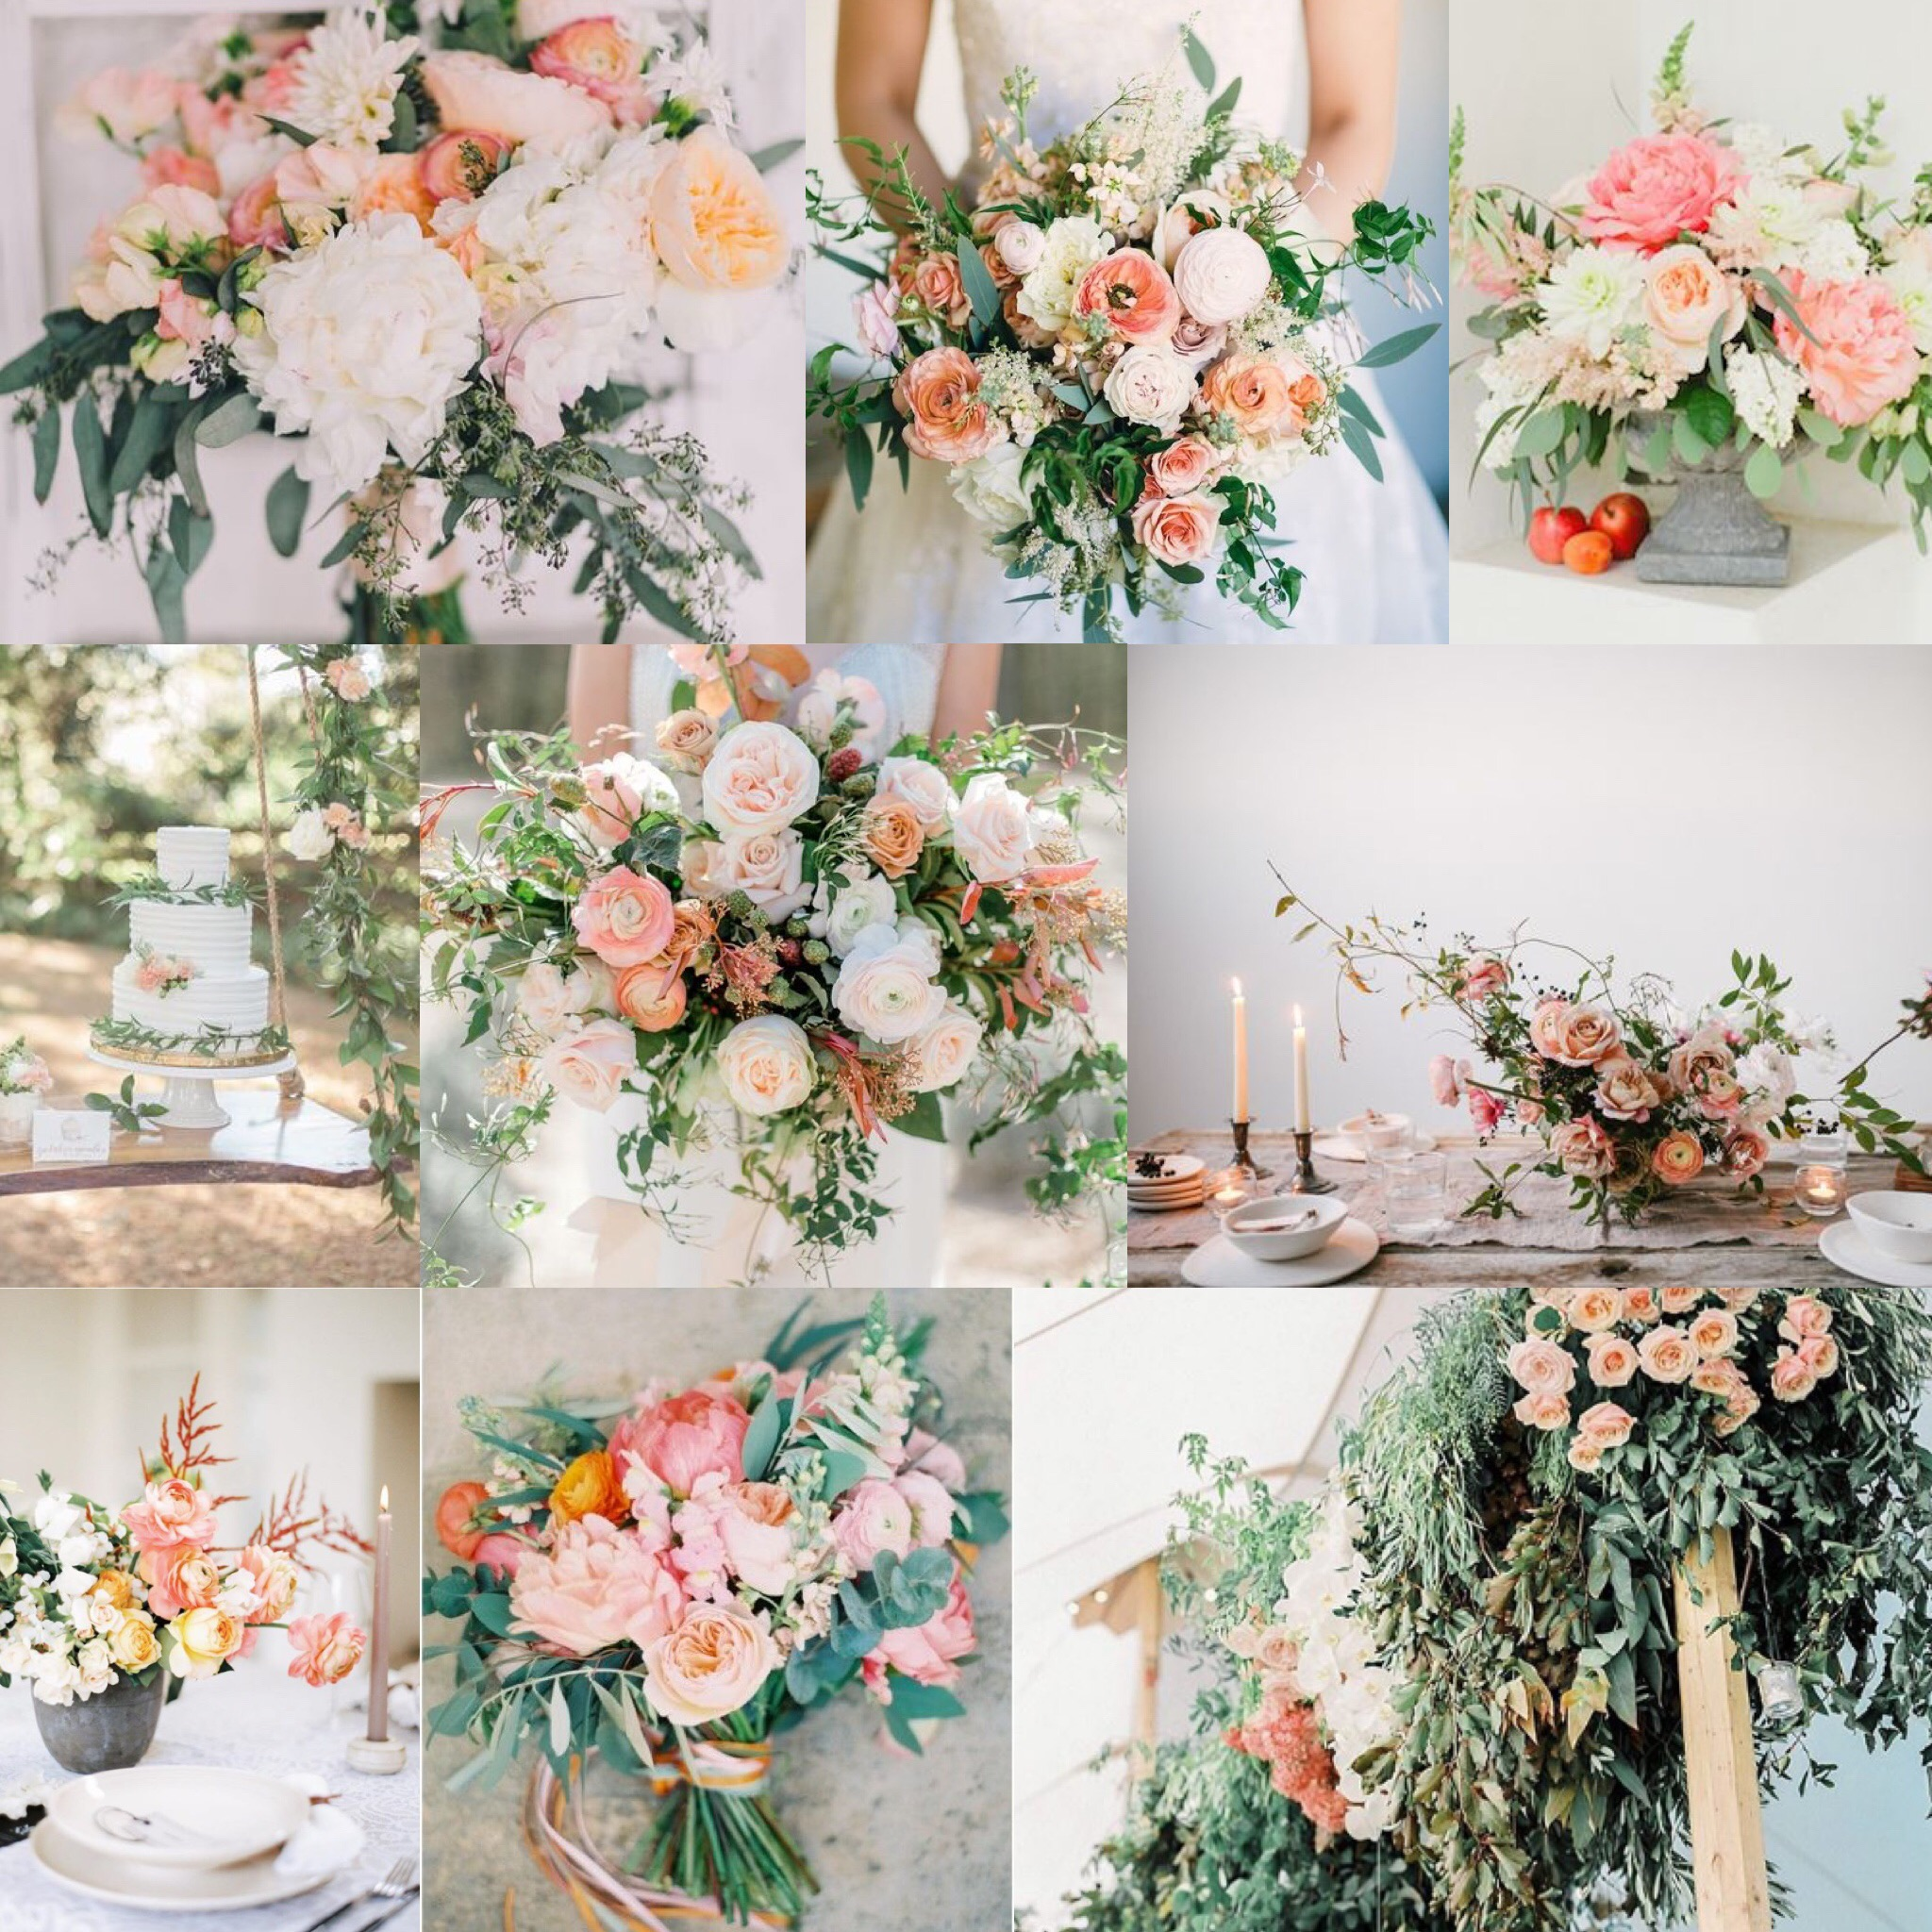 PapaKata Spring 2019 Open Weekend Teepee and Sperry Tent wedding and event Inspiration and trends Flowers